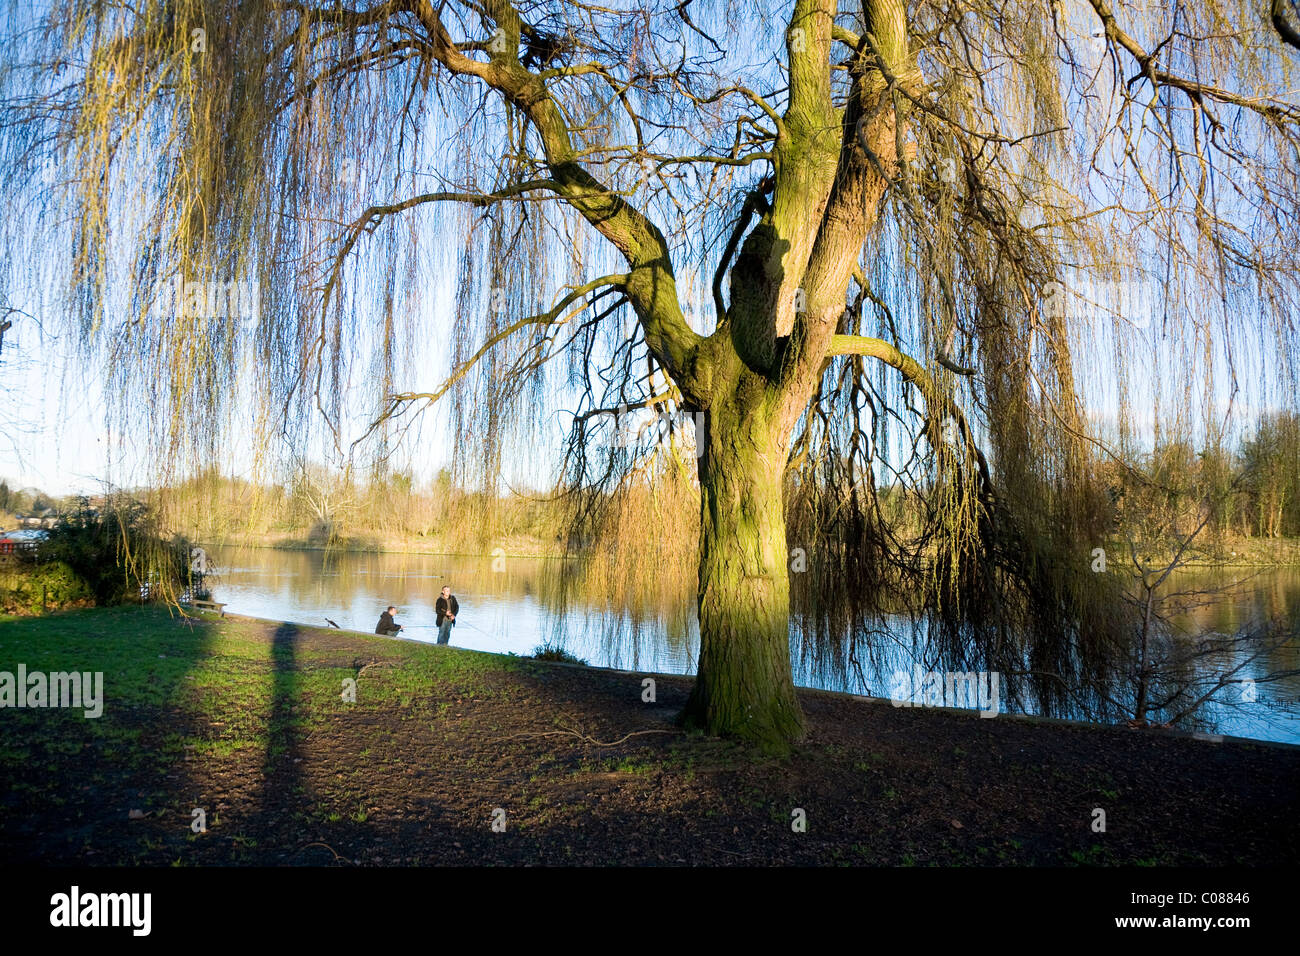 Willow tree and bare winter / spring branches on the river bank at Radnor Gardens in Twickenham. Middlesex / Middx. - Stock Image